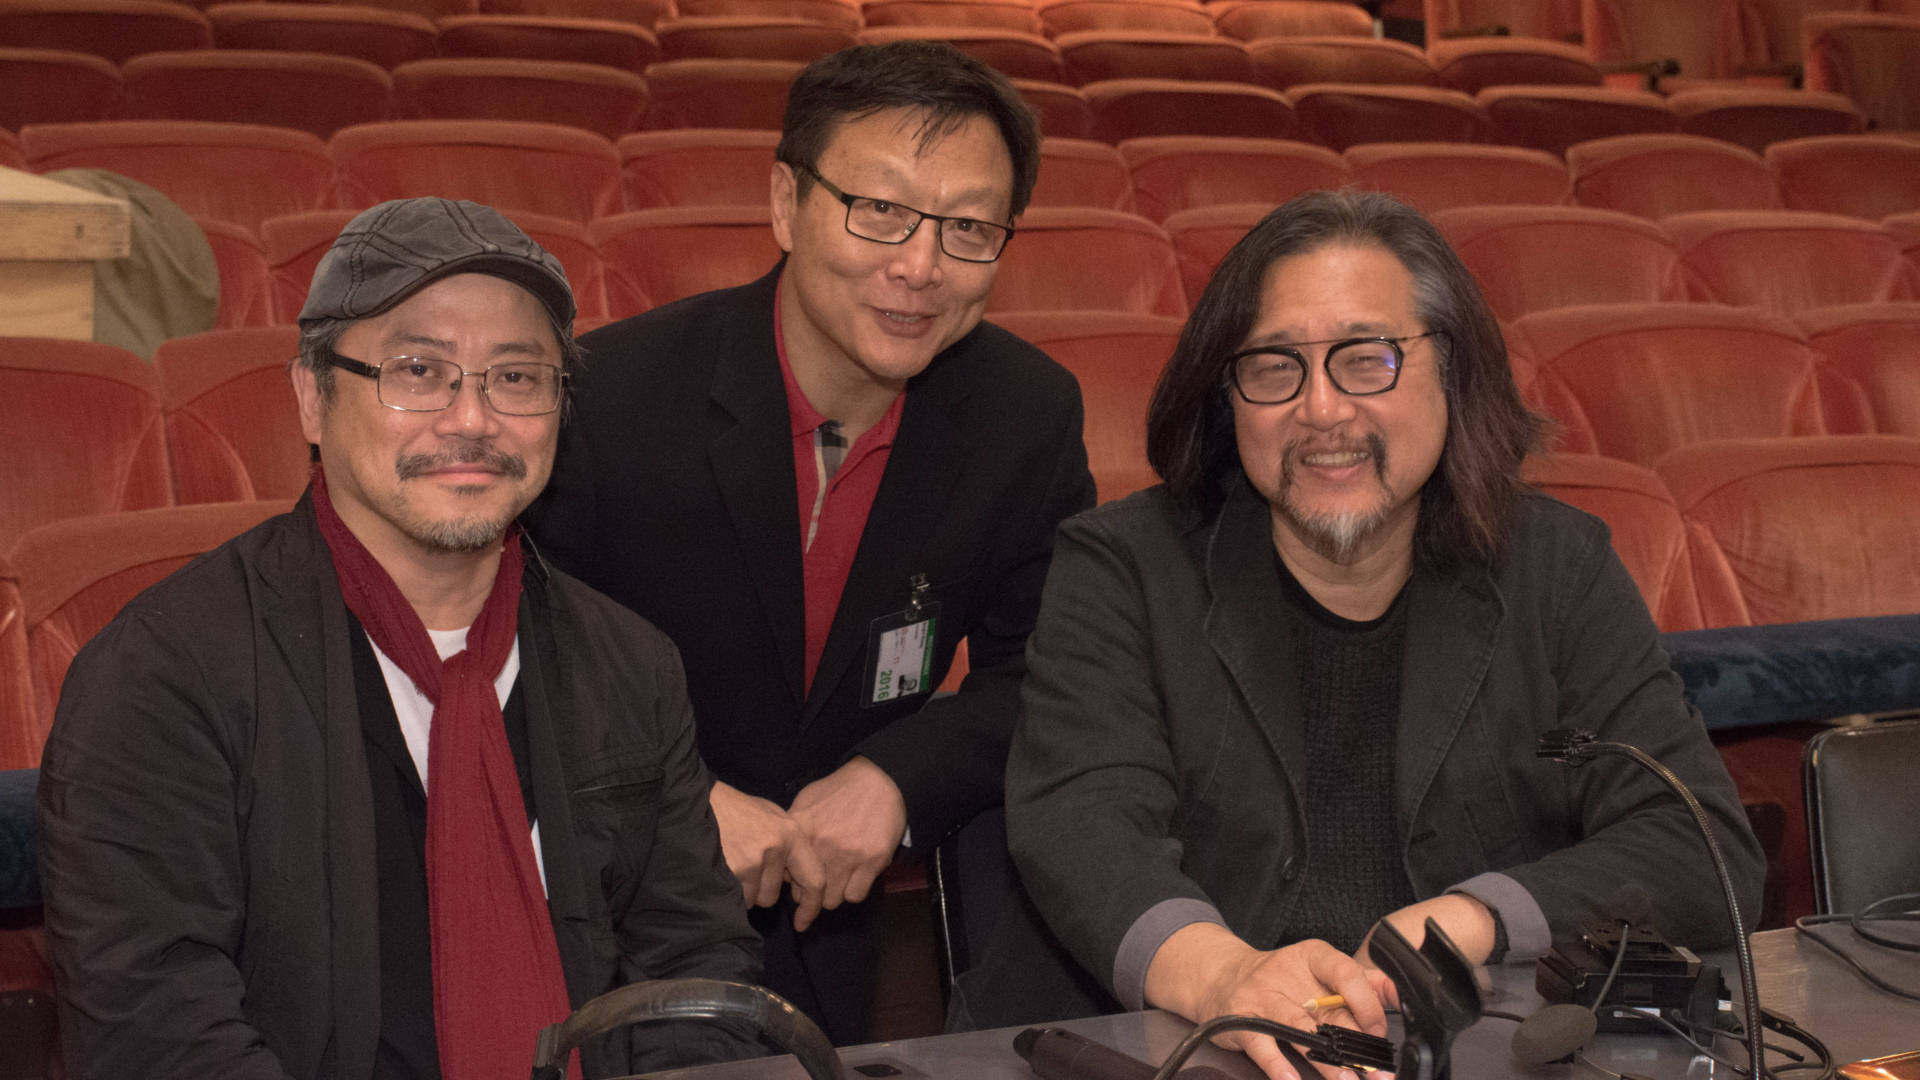 Tim Yip, Bright Sheng and Stan Lai: Three of the key creatives behind SF Opera's new world premiere 'Dream of the Red Chamber'